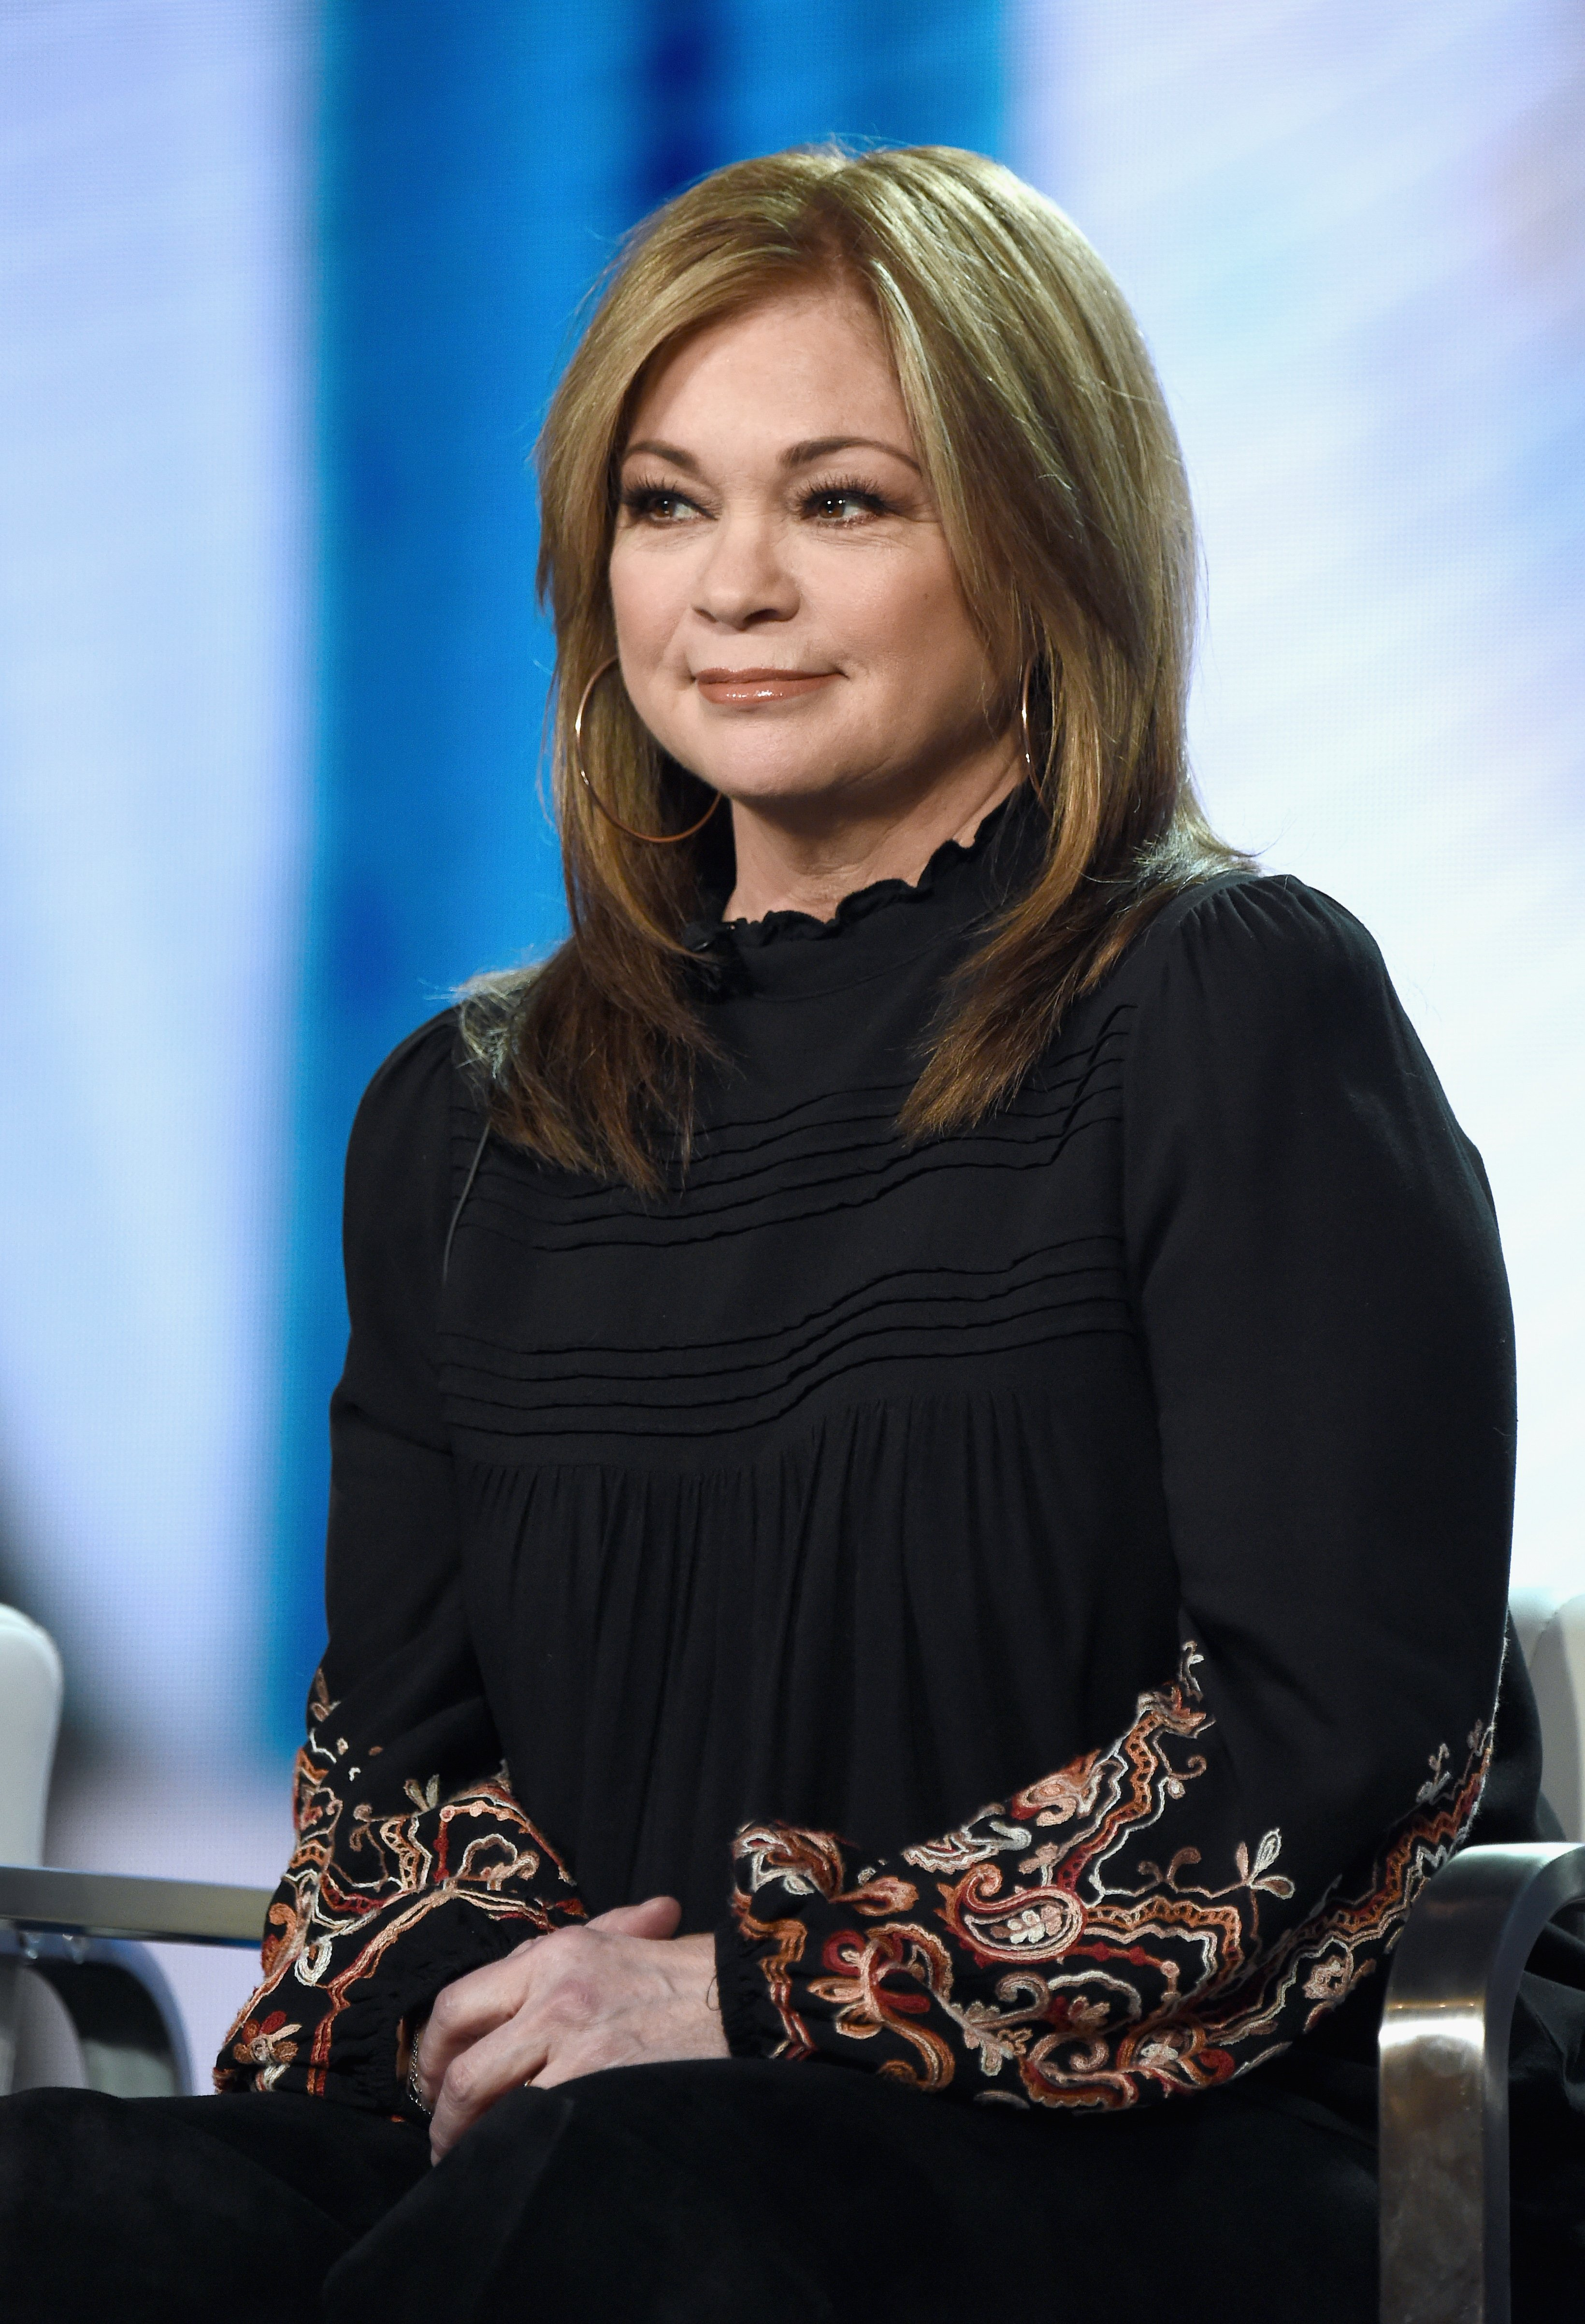 Valerie Bertinelli of 'Family Food Showdown' speaks onstage during the Food Network portion of the Discovery Communications Winter 2019 TCA Tour at the Langham Hotel on February 12, 2019 in Pasadena, California | Photo: Getty Images